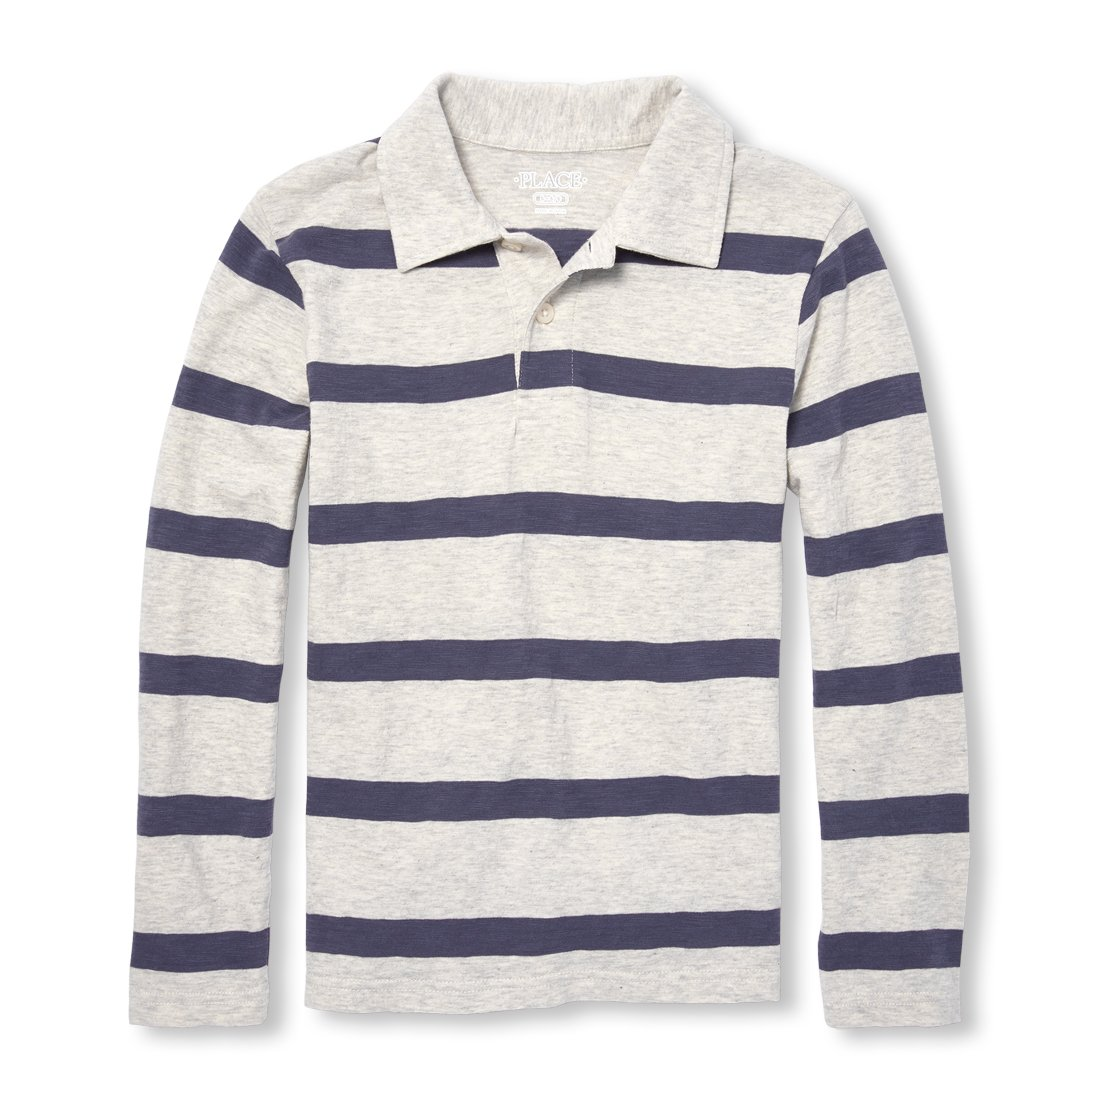 The Children's Place Boys' Big Rugby Long Sleeve Polo, Heather/T ash, M (7/8)